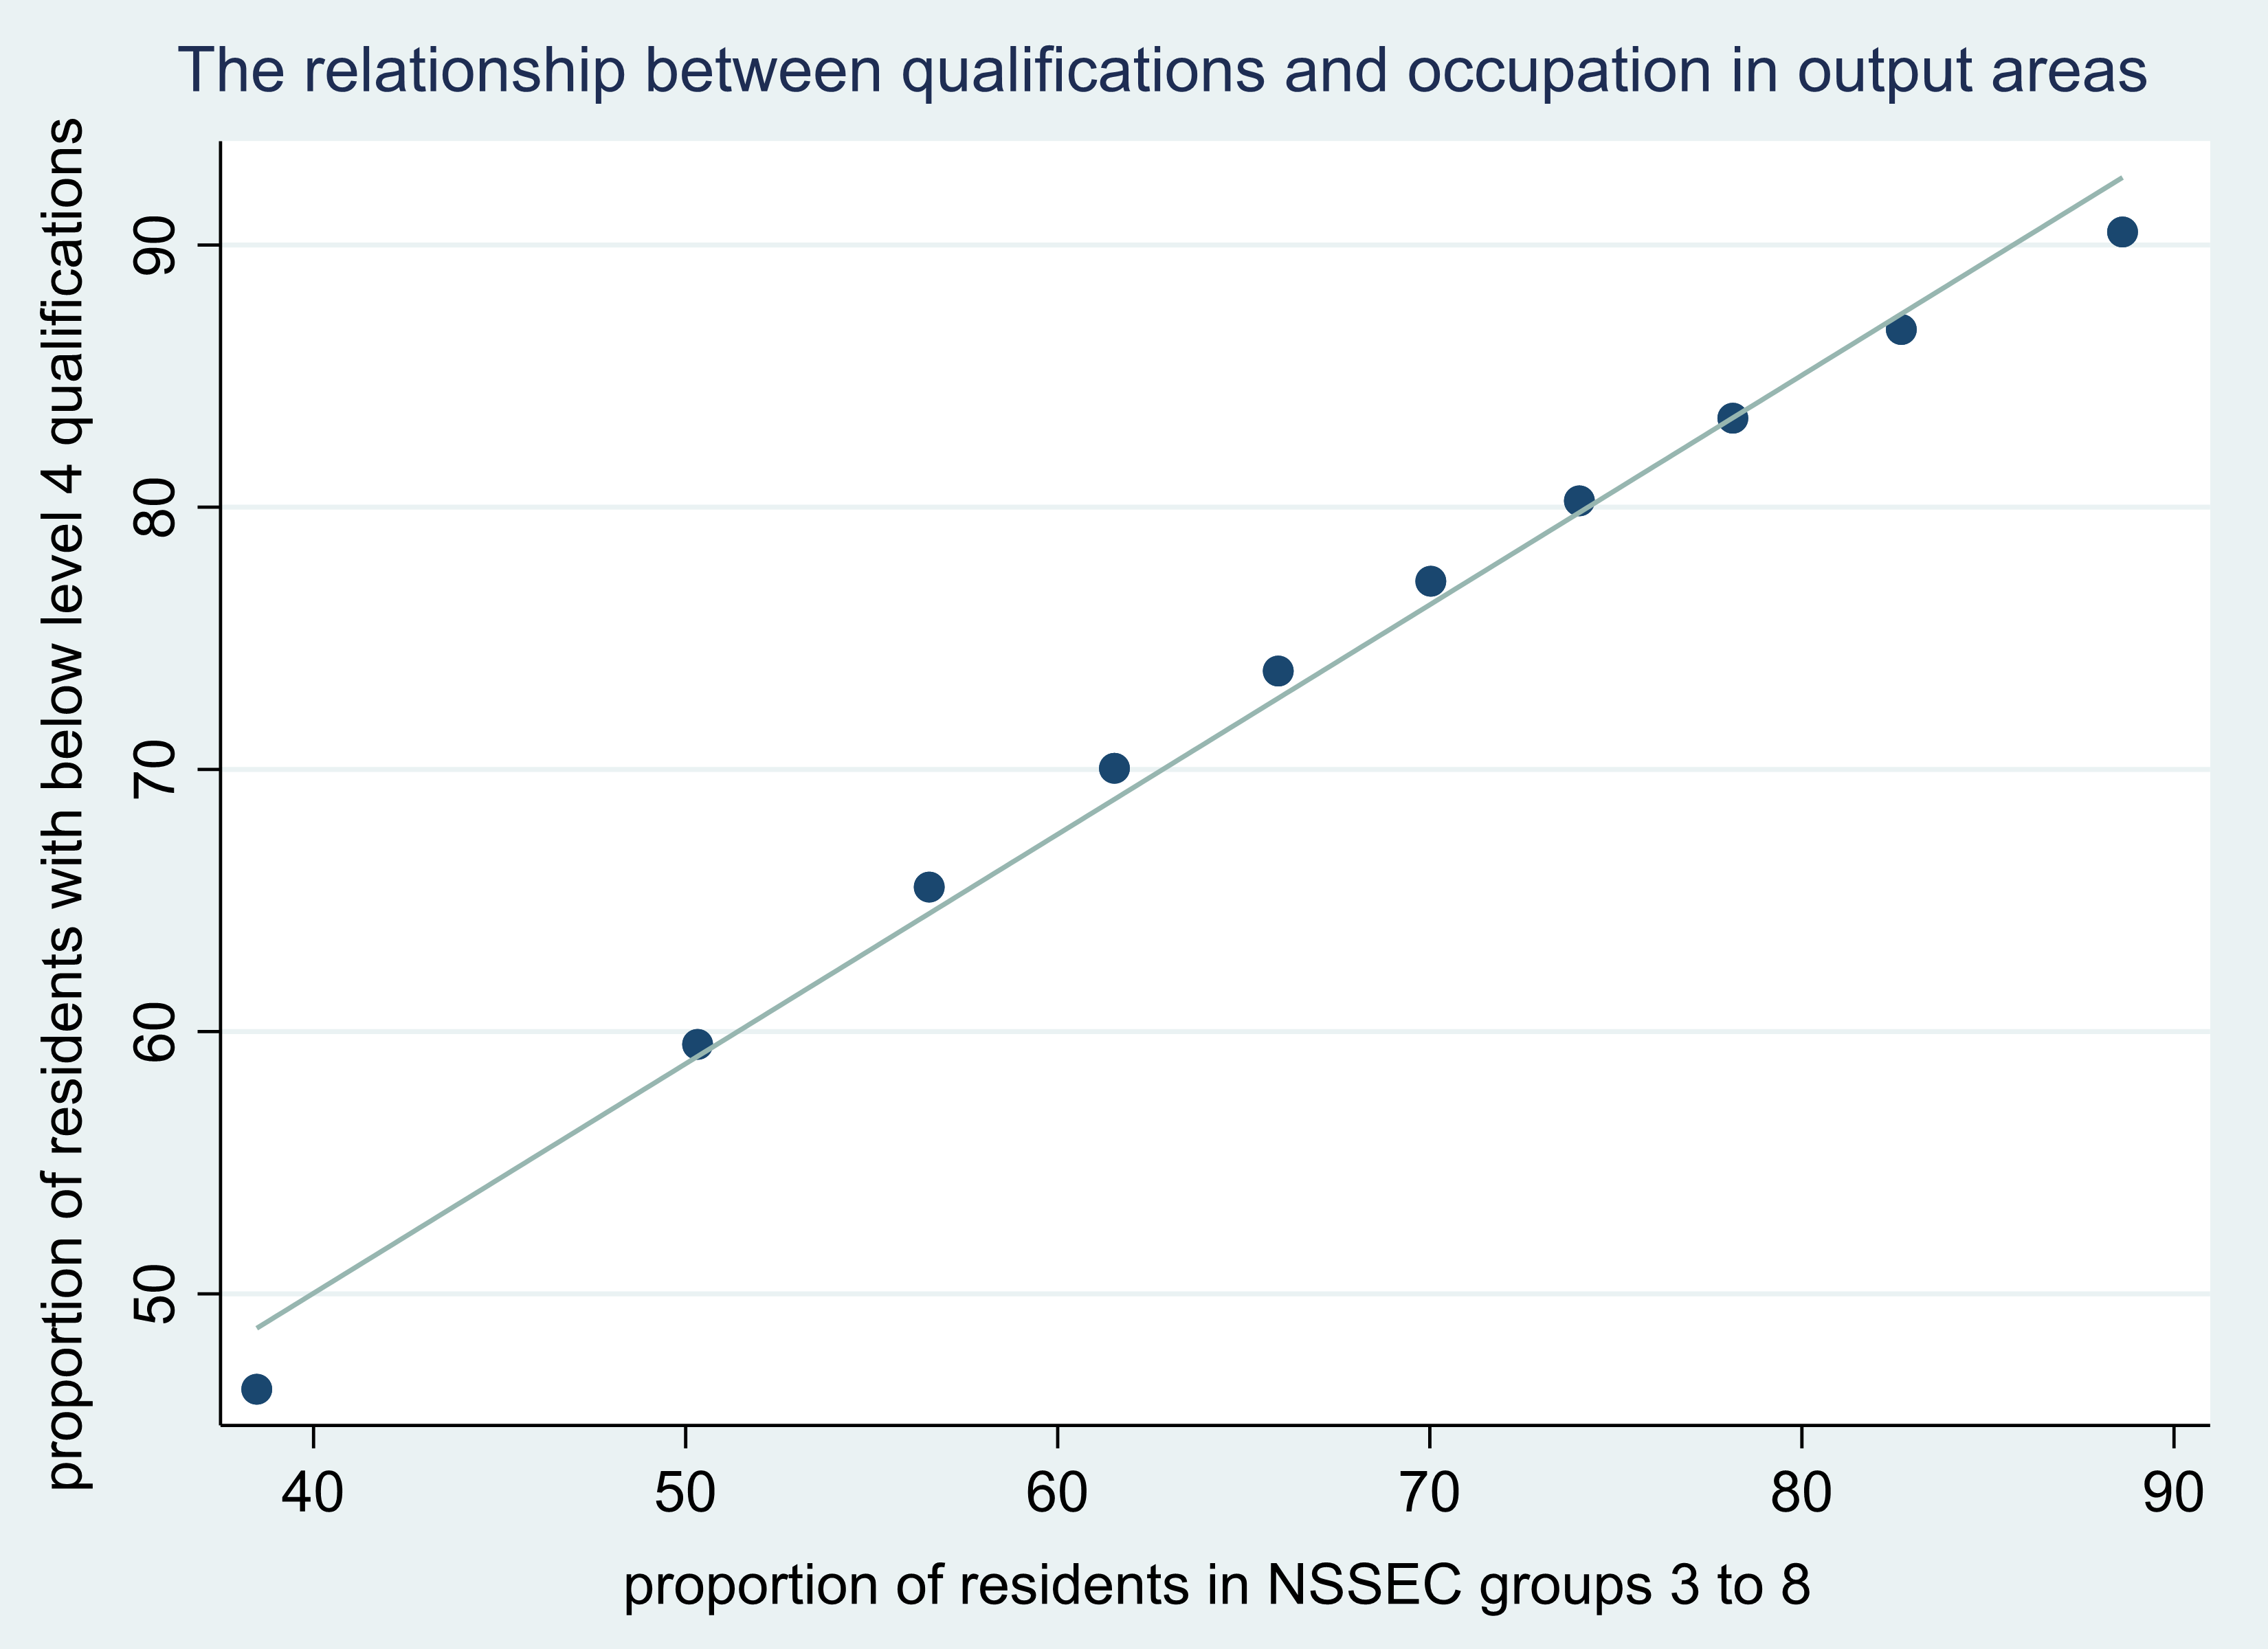 Scatter plot showing the proportion of residents with below level 4 qualifications and in NSSEC groups 3 to 8 in output areas. The two measures correlate very closely. Further detail is described in the text of the page.